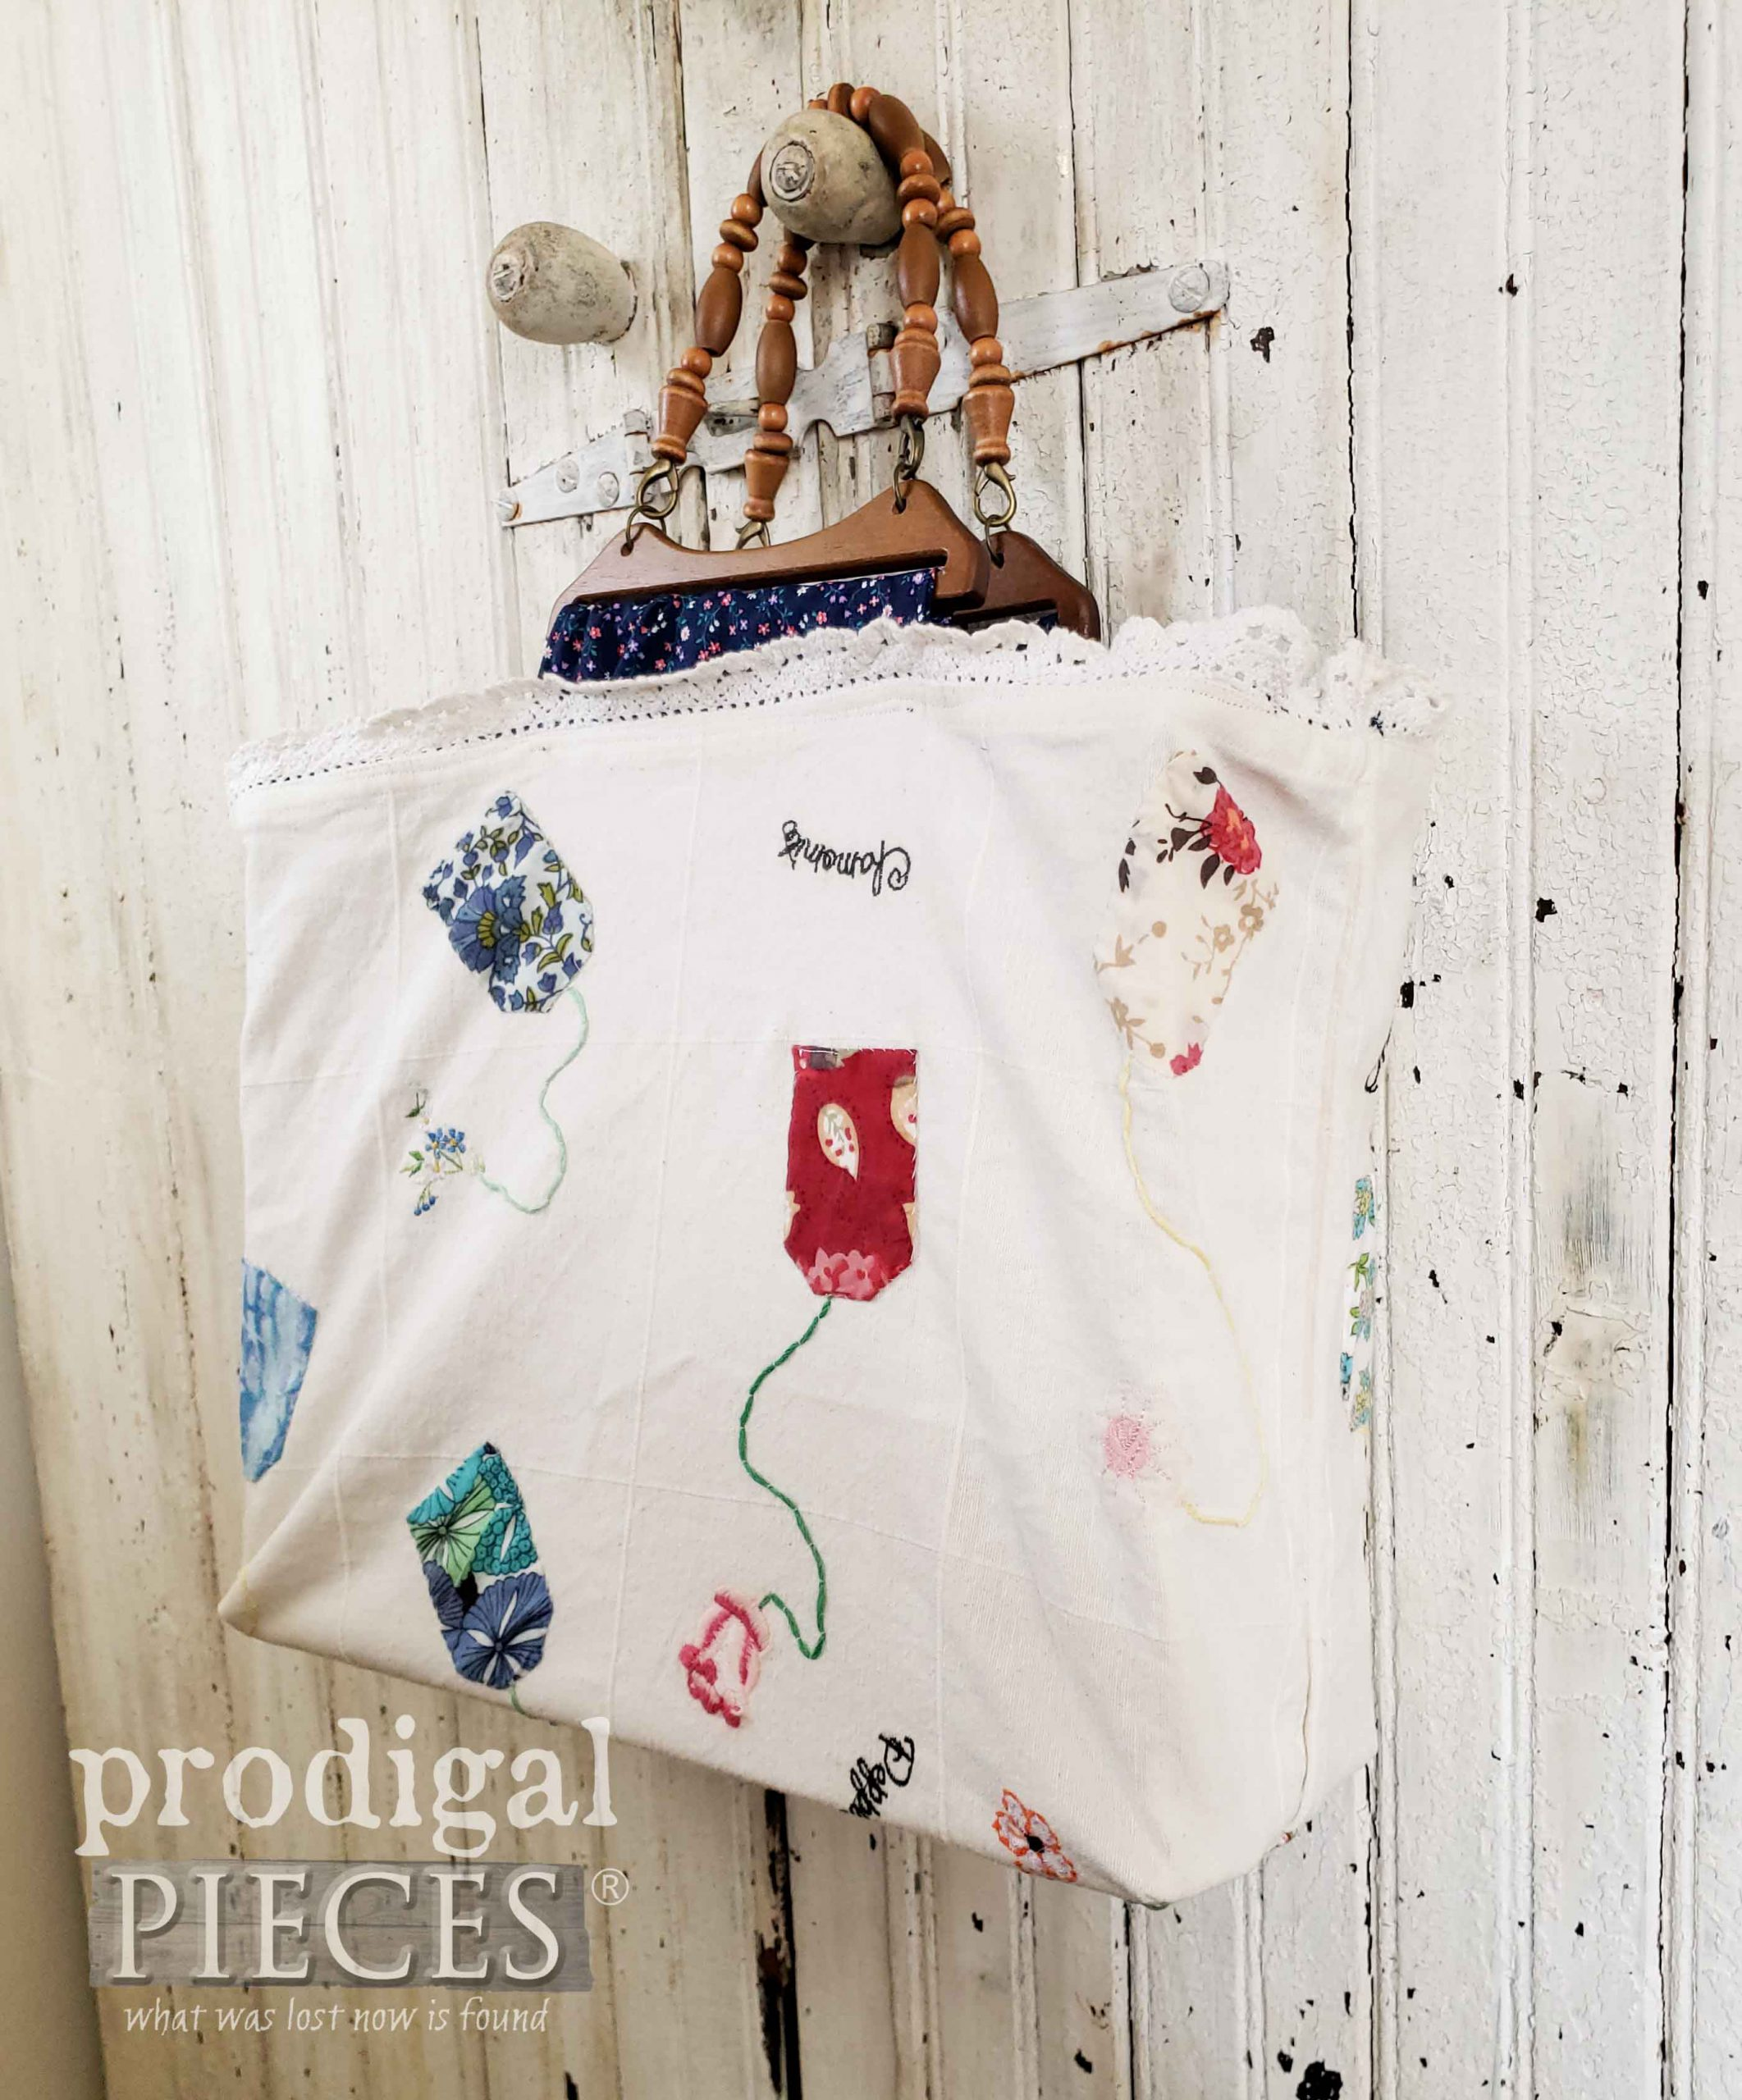 Handmade Embroidered Tote by Larissa of Prodigal Pieces | prodigalpieces.com #prodigalpieces #handmade #fashion